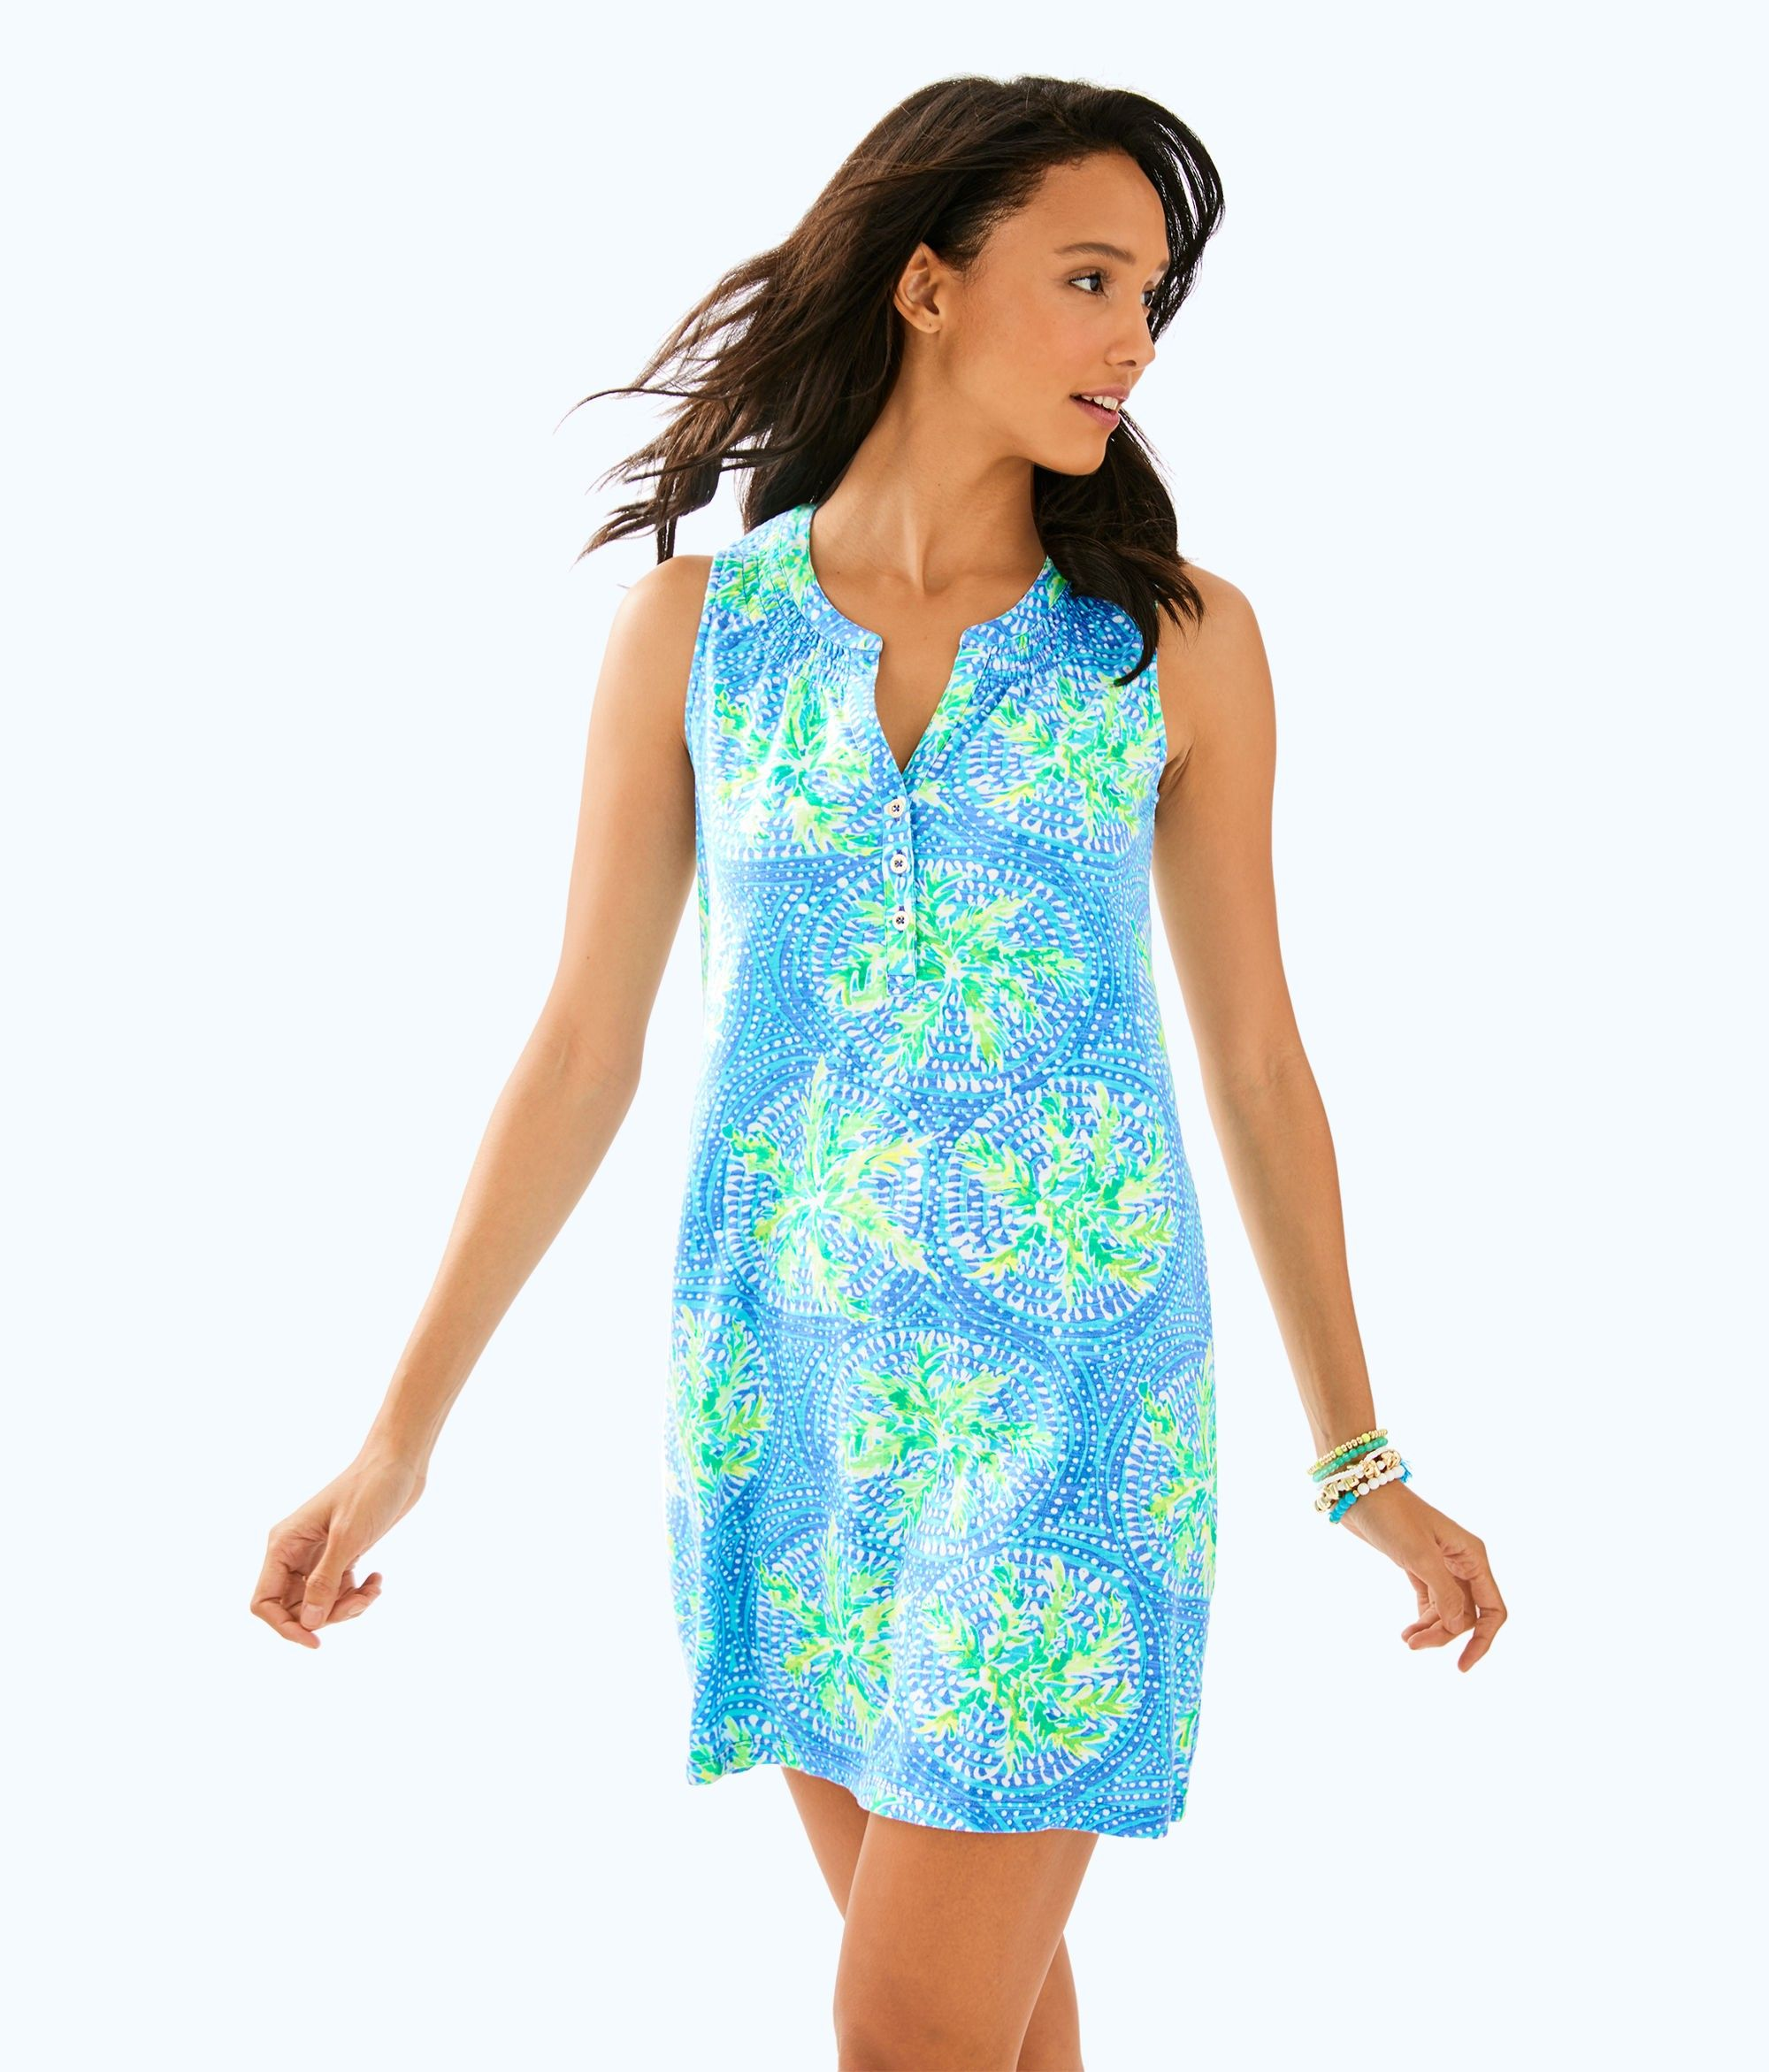 3f69999fc44270 Lilly Pulitzer Sleeveless Essie Dress - M Gold   Products   Dresses ...